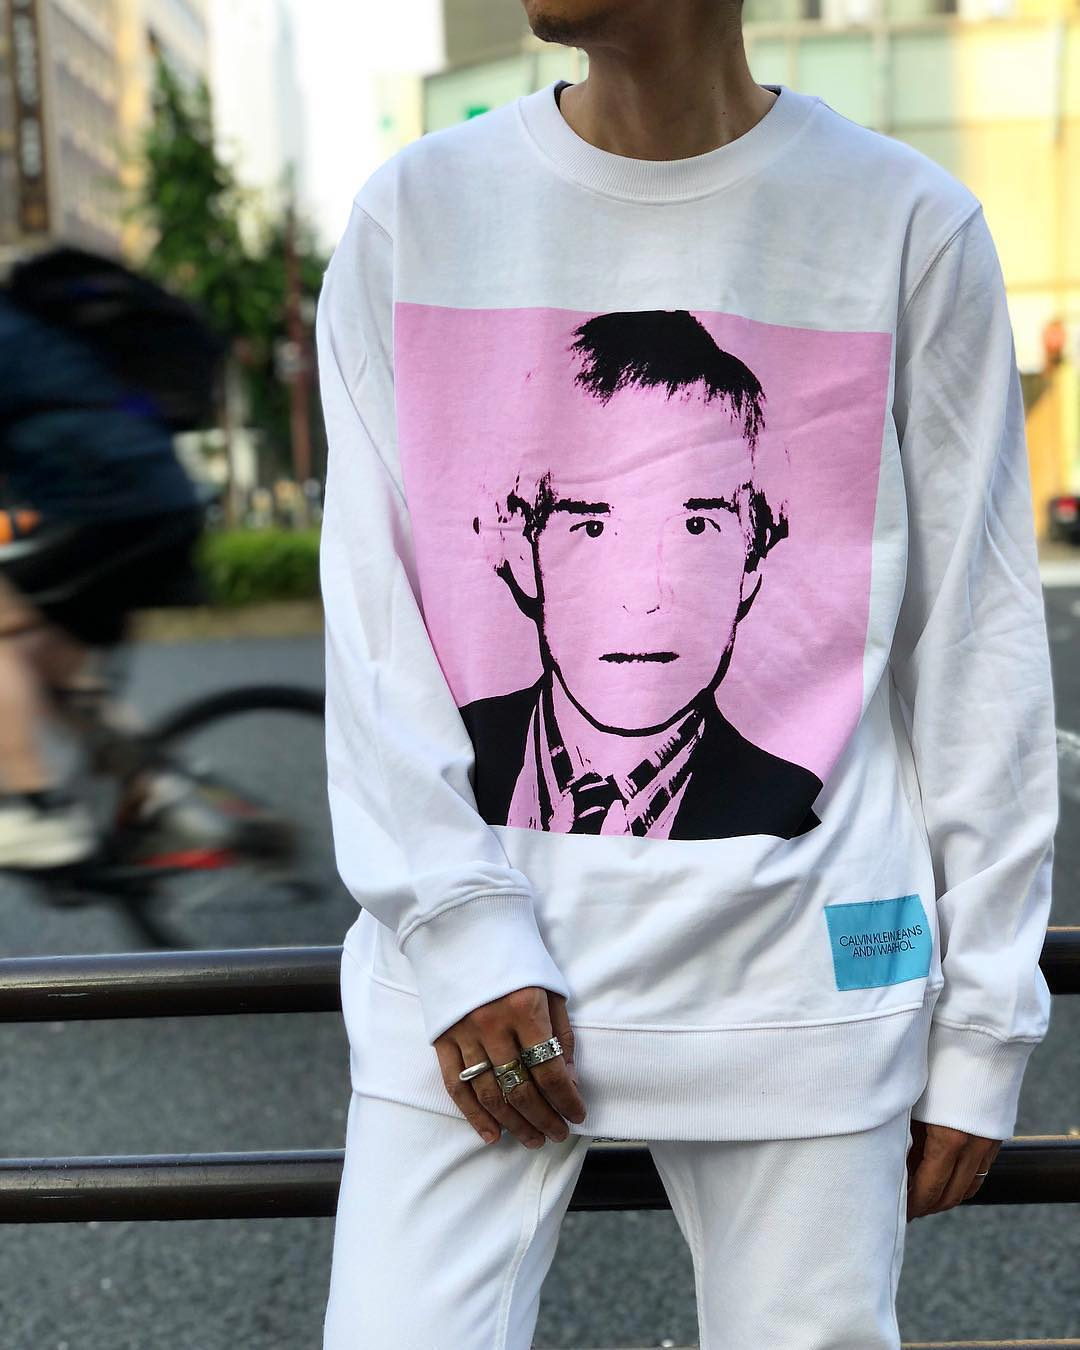 An Andy Warhol self-portrait printed on a crew-neck shirt by Calvin Klein Jeans. Image courtesy of Calvin Klein's Instagram